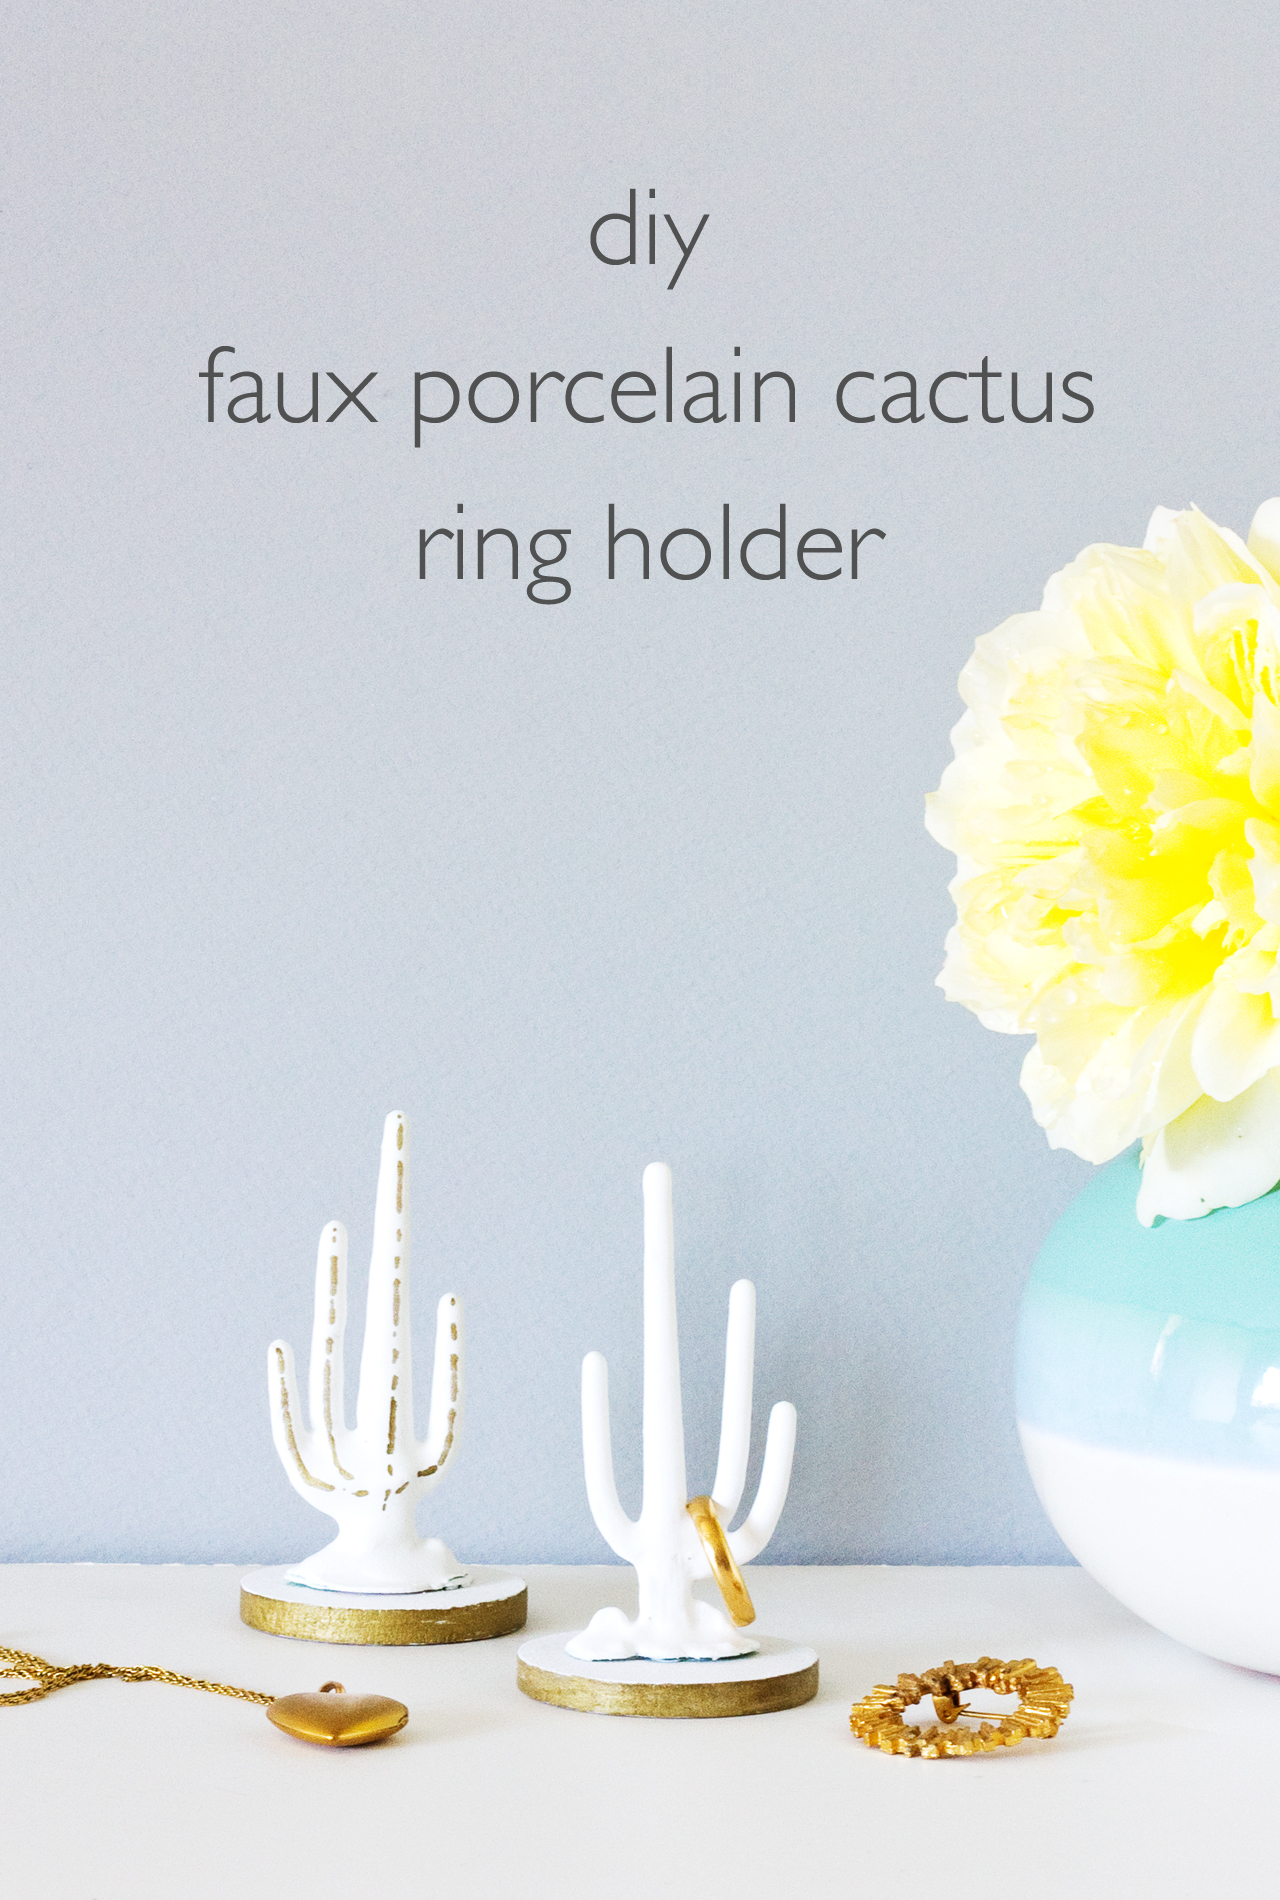 DIY Faux Porcelain Cactus Ring Holder